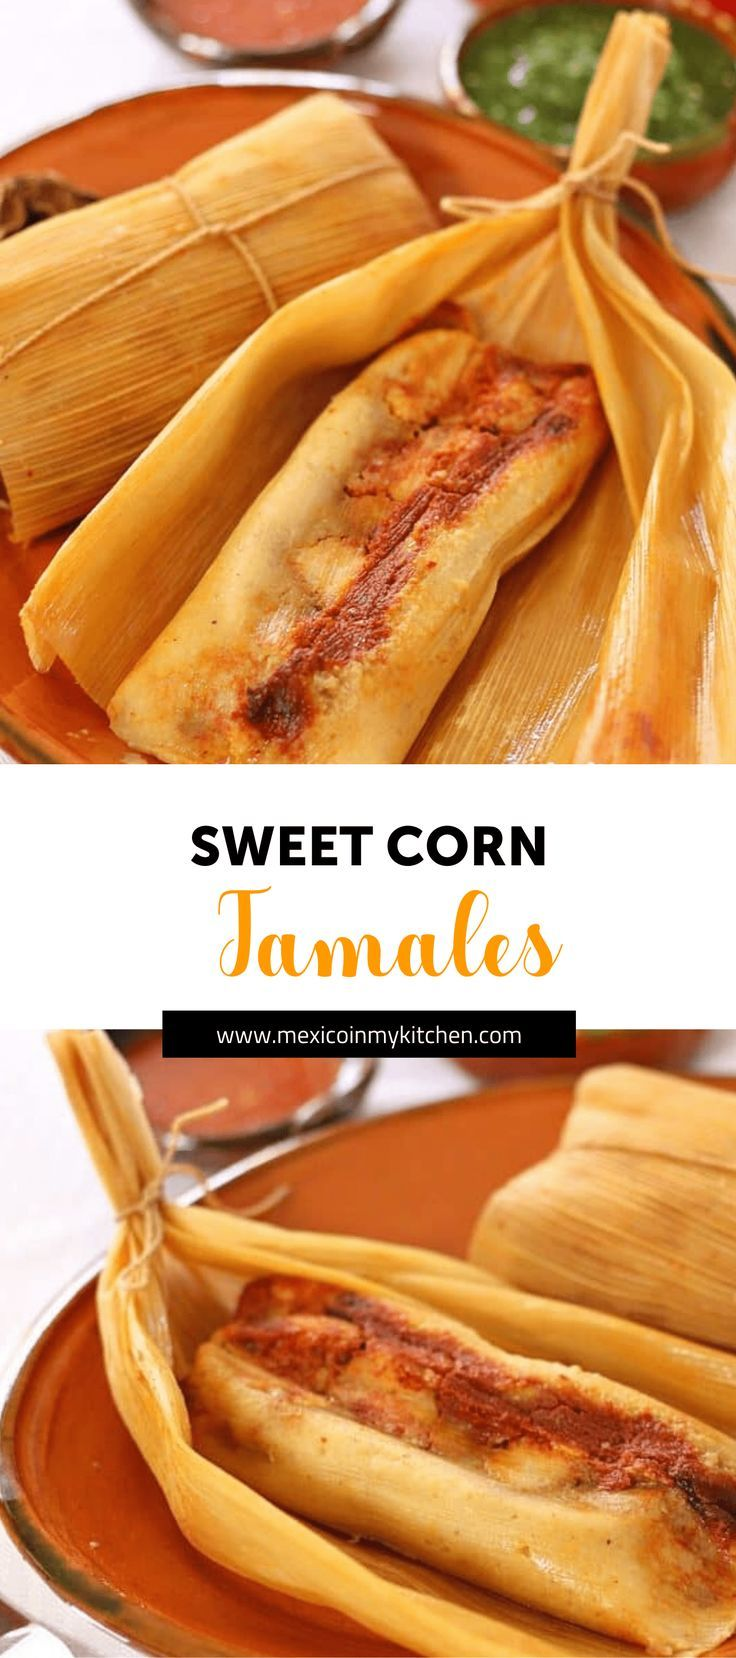 Sweet Corn Tamales #mexicandishes